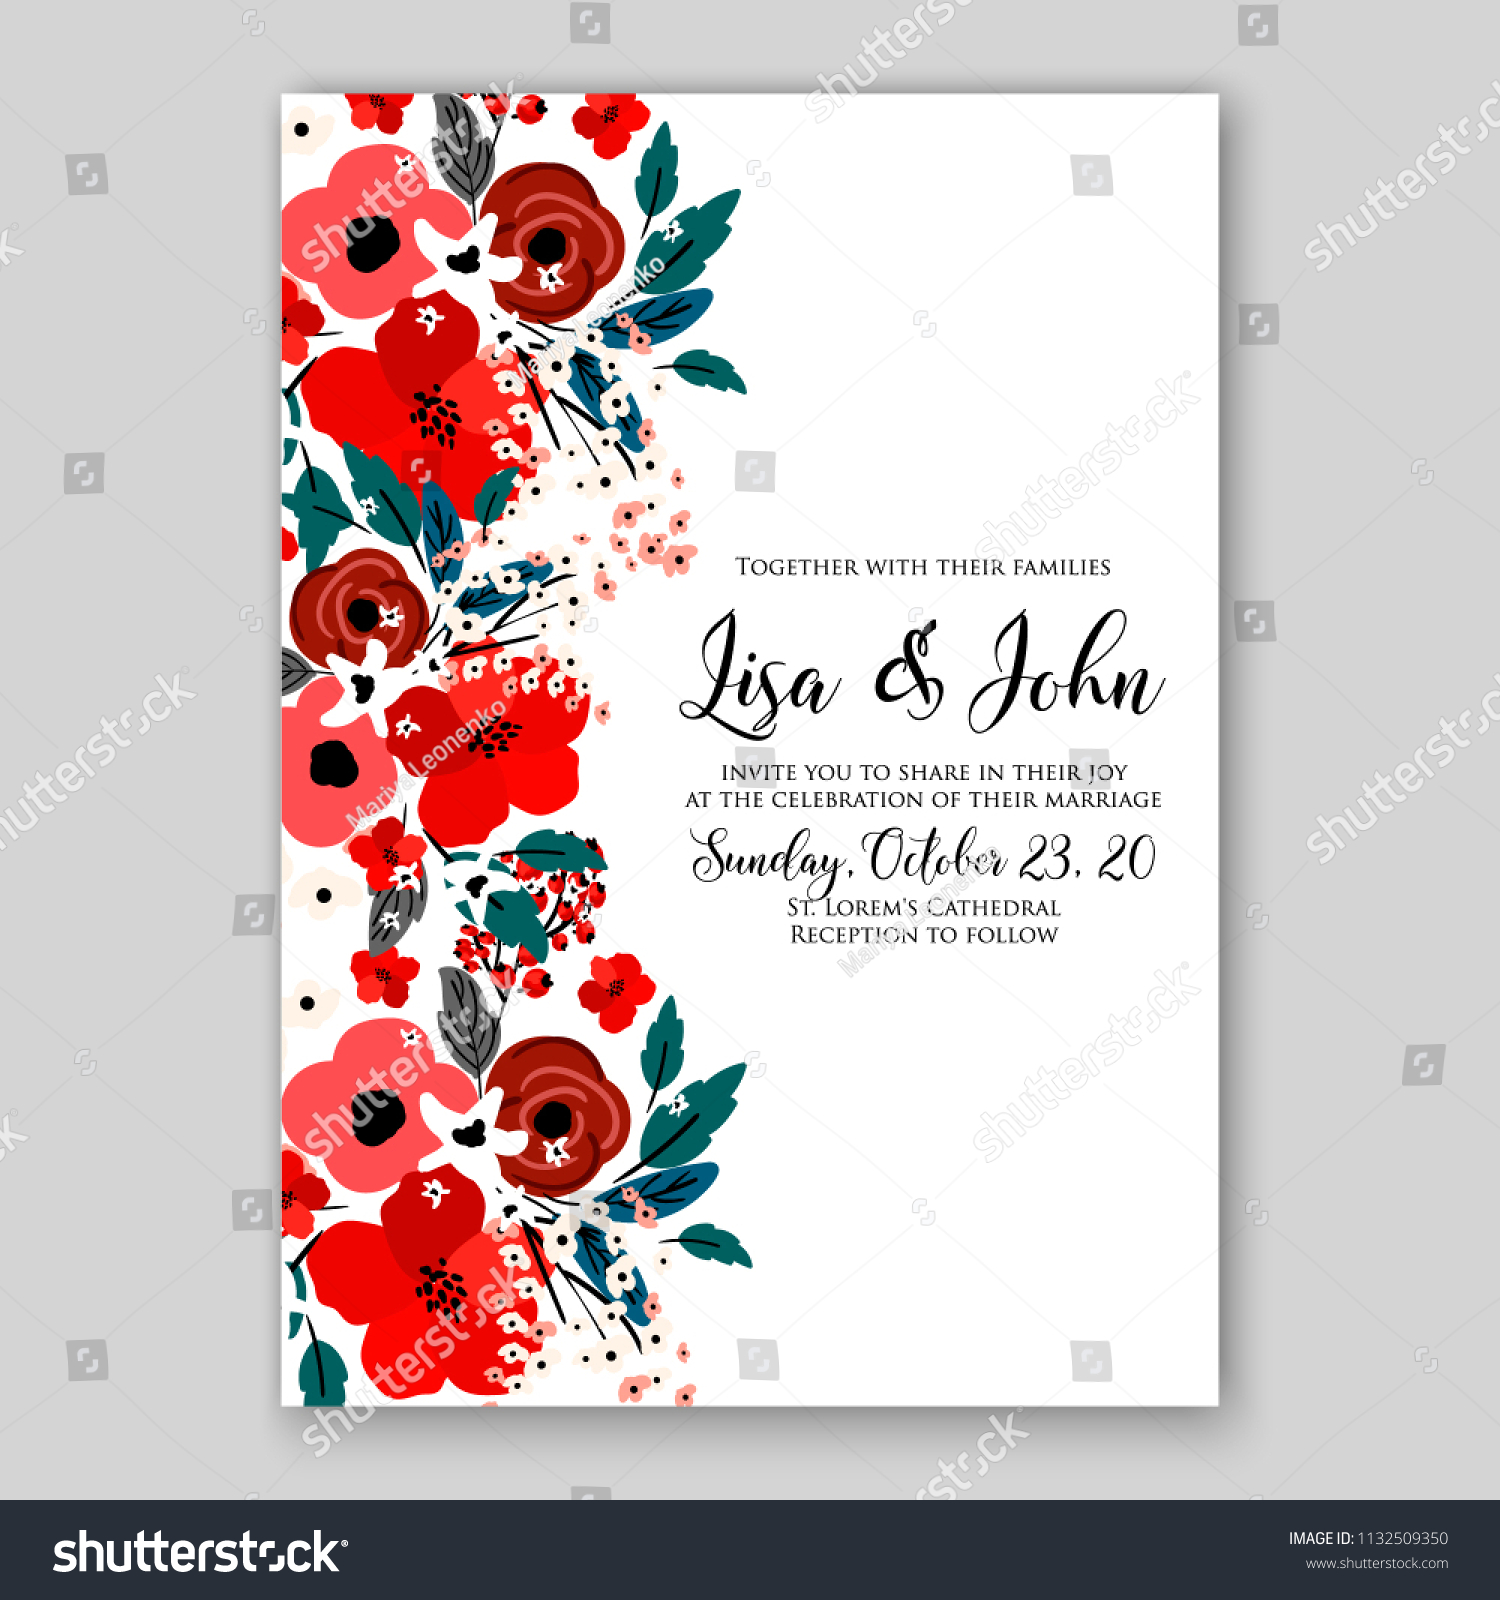 Wedding Invitation Card Flower Red Rose Stock Vector (Royalty Free ...